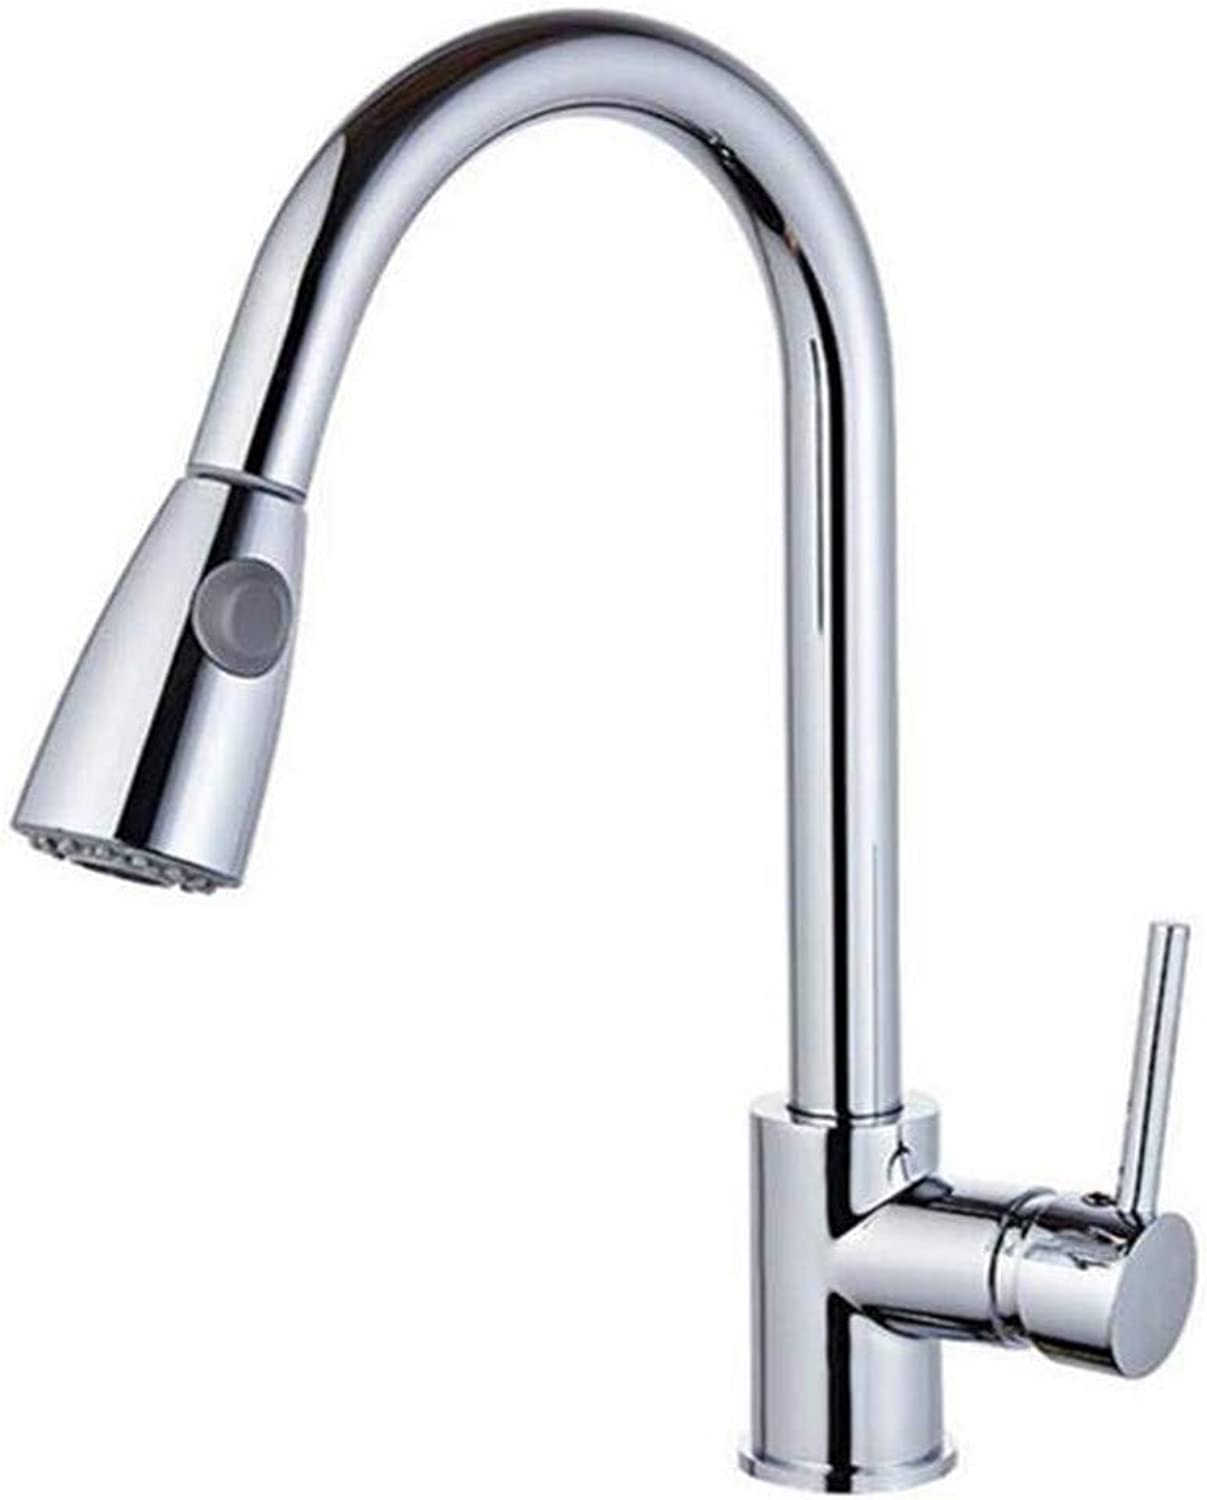 Faucet Retro Kitchen Bathroom Faucet Faucet Kitchen Faucets Silver Single Handle Pull Out Kitchen Tap Single Hole Handle Swivel 360 Degree Water Mixer Tap